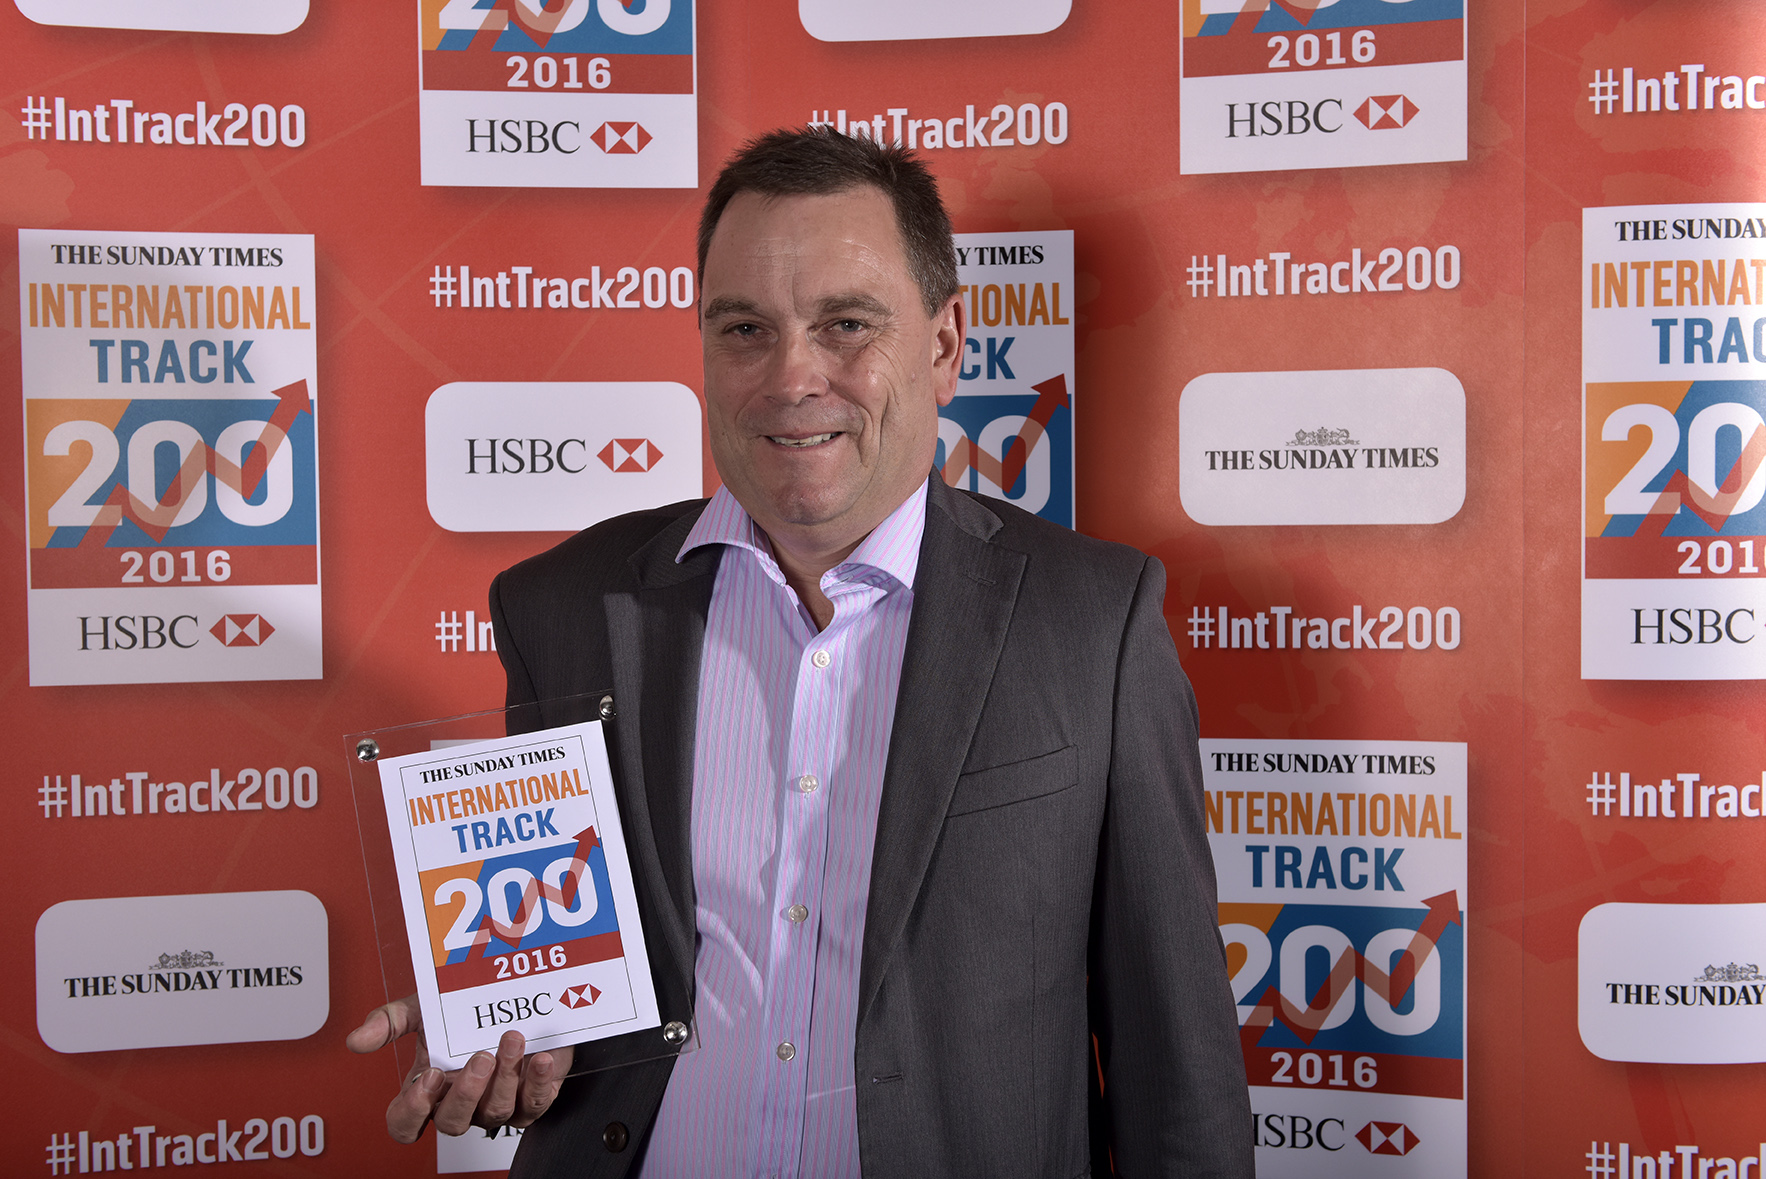 Vision Support Services Ranks 80th in Sunday Times HSBC International Track 200 List for 2018